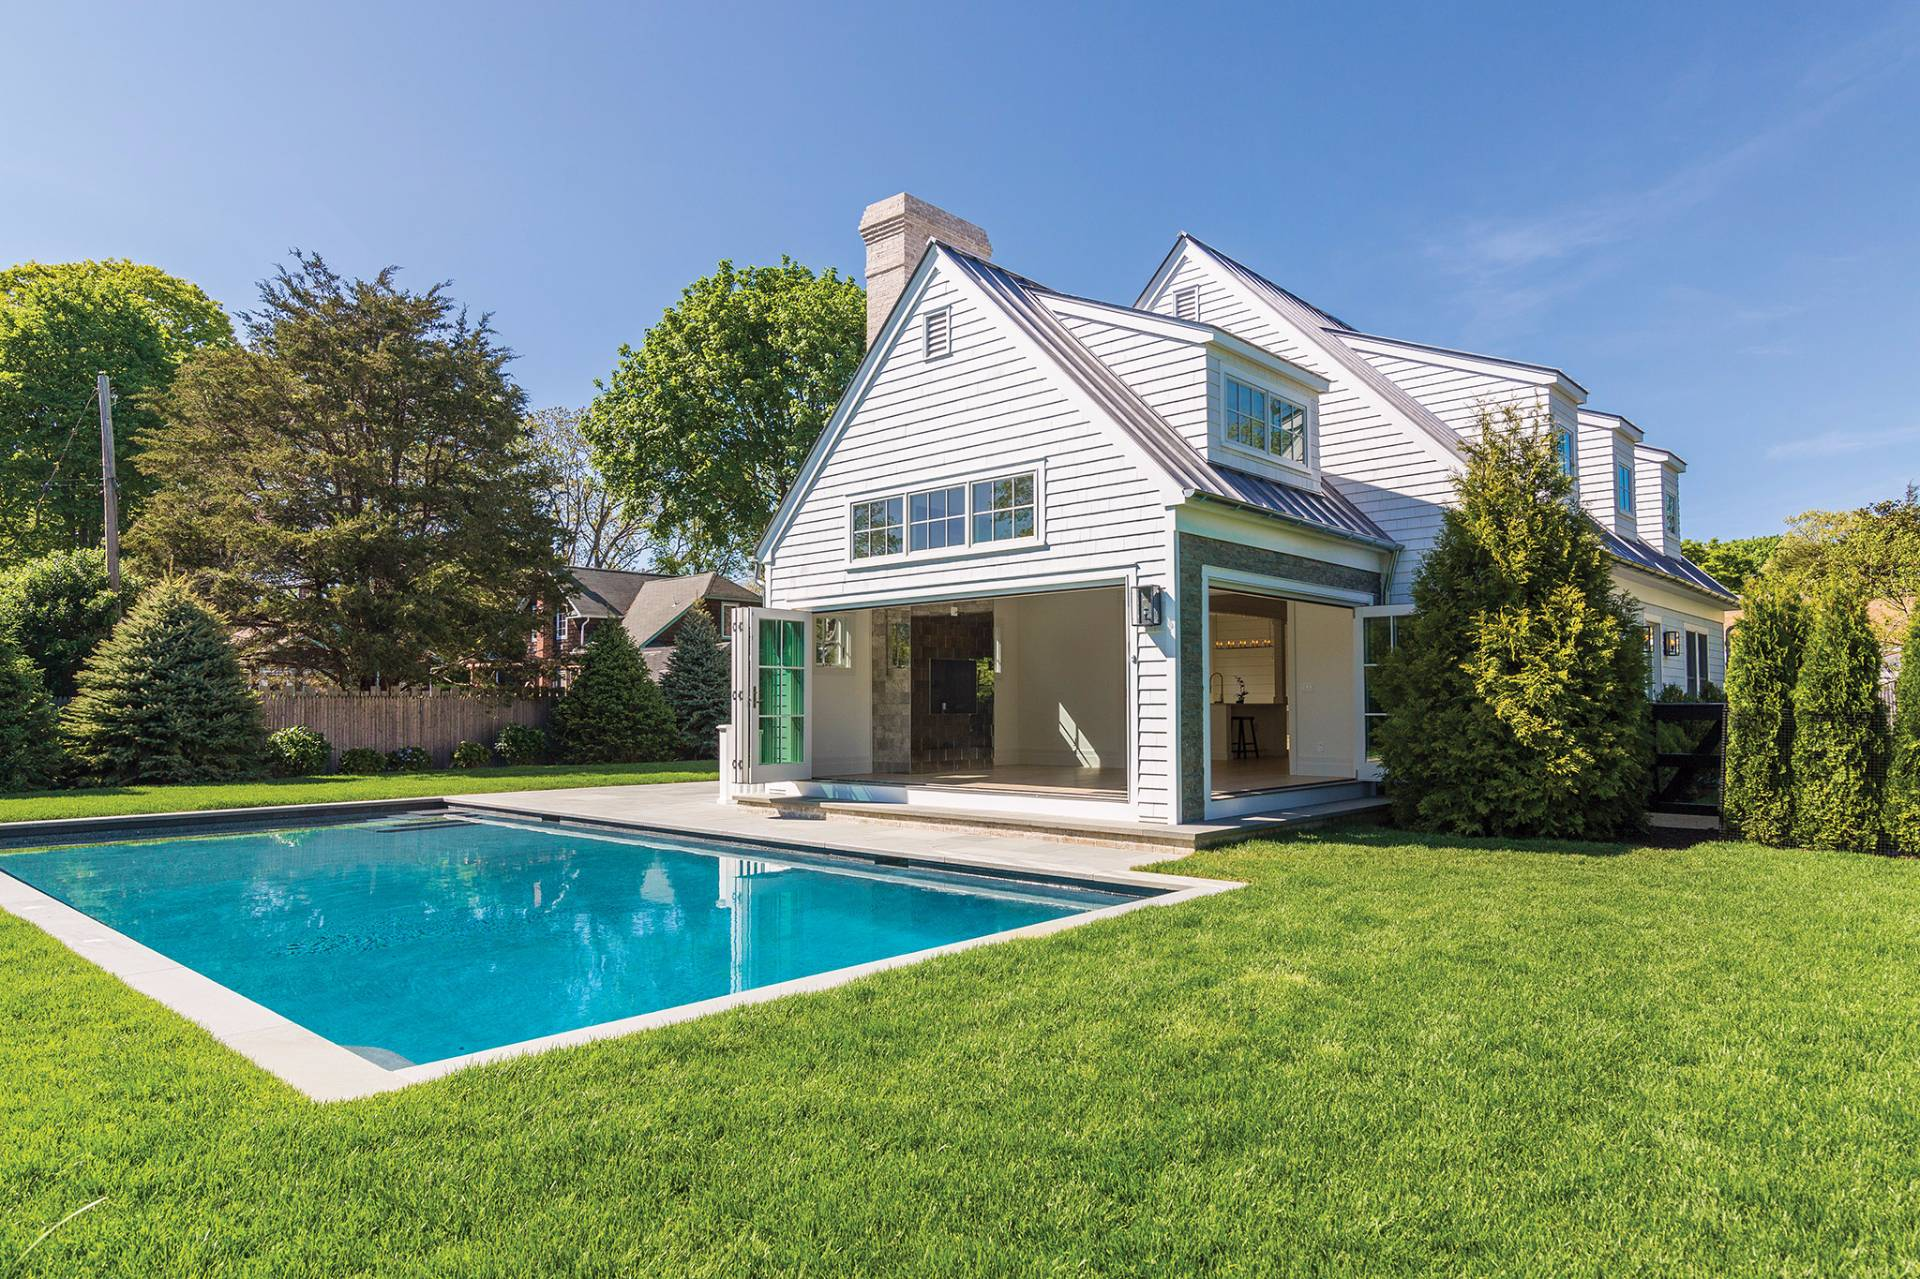 Single Family Home for Sale at New Construction In East Hampton Village 37 Church Street, East Hampton, New York